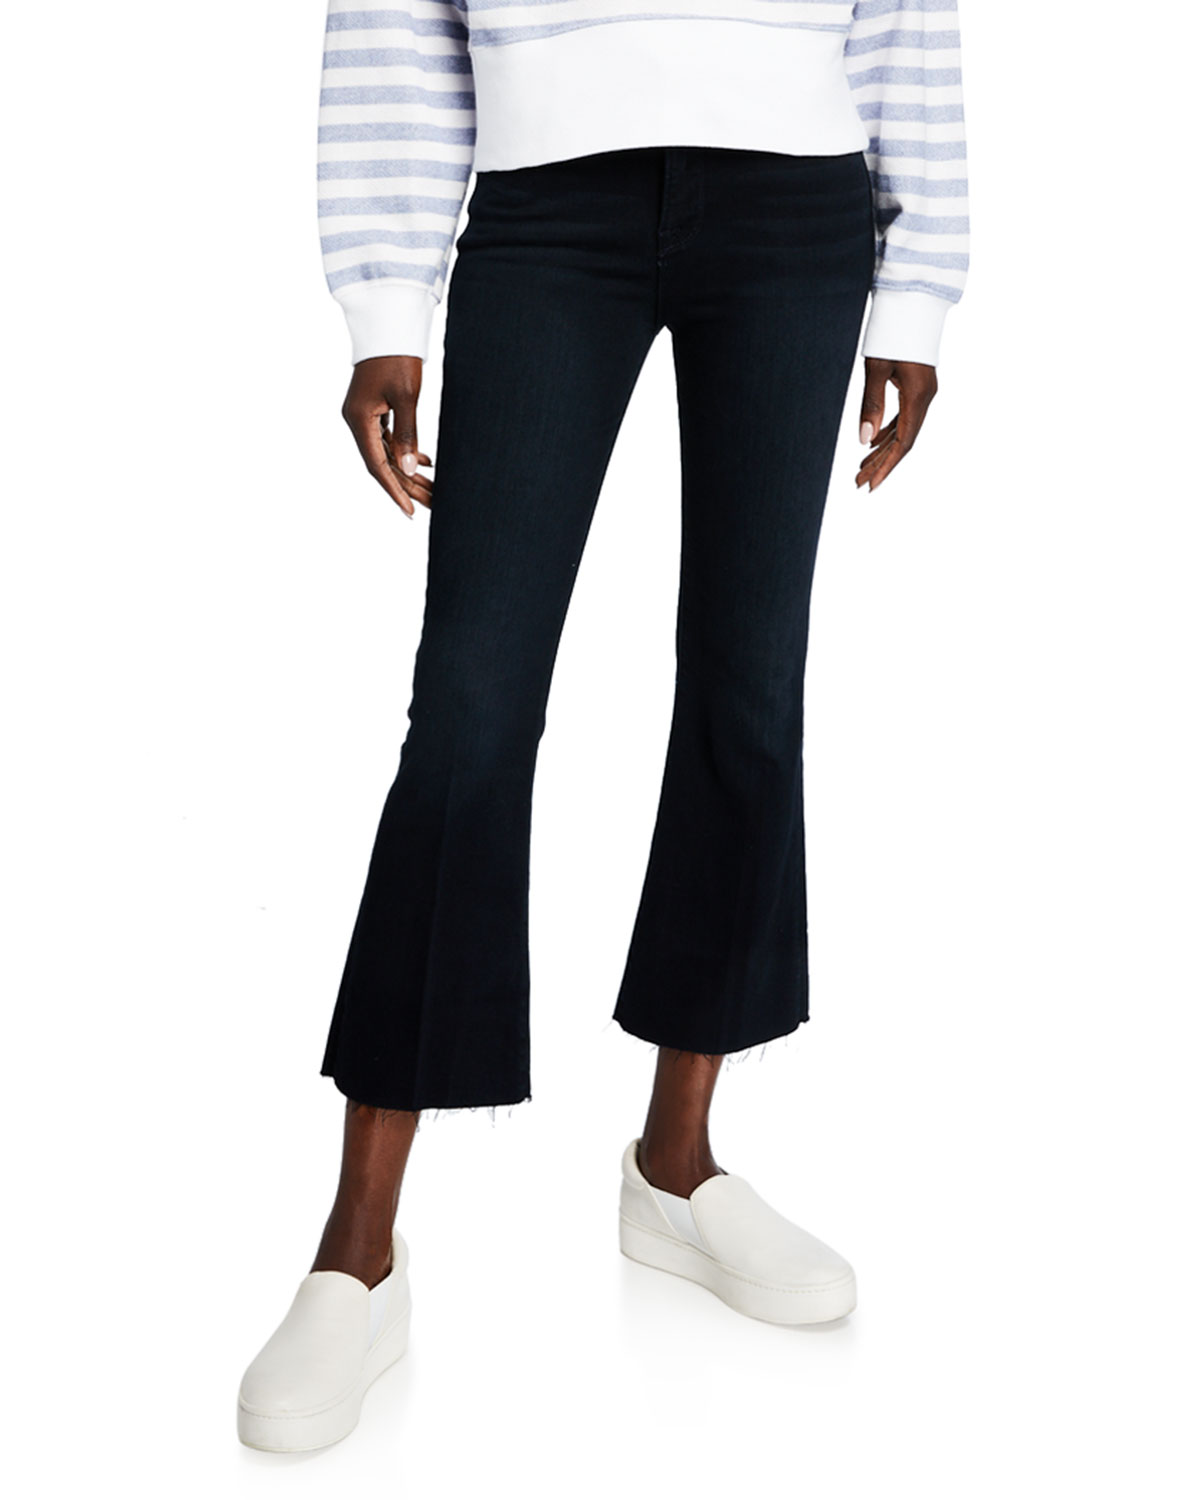 Frame Jeans LE CROP MINI BOOT-CUT JEANS WITH RAW HEM